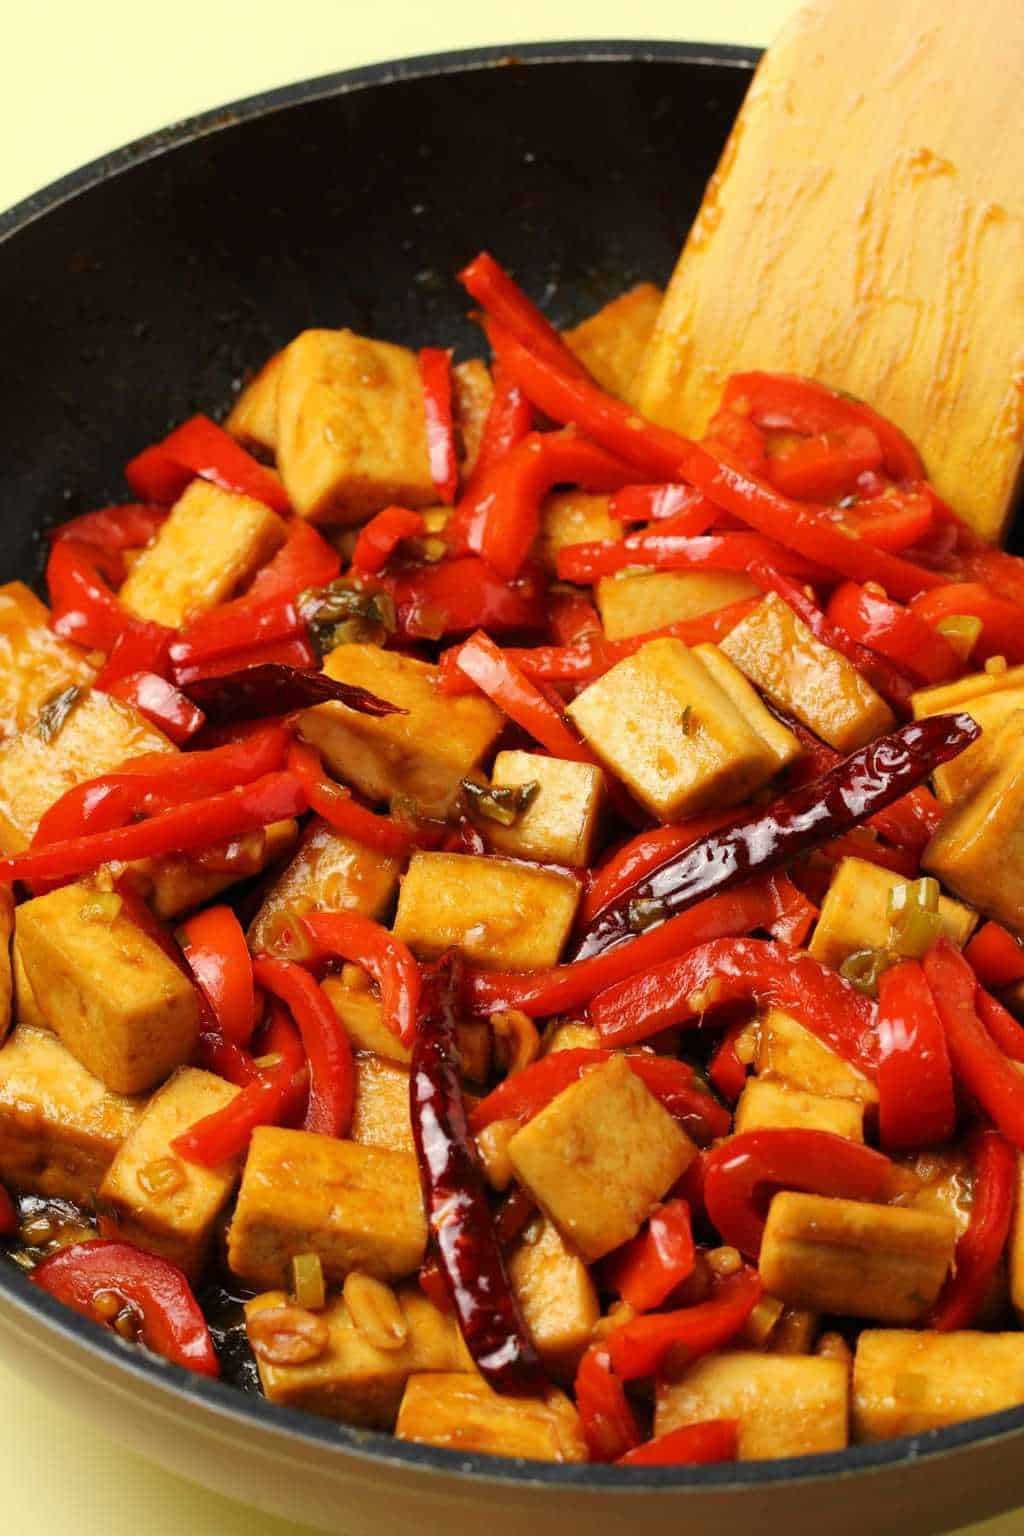 Kung pao tofu in a frying pan with a wooden spatula.